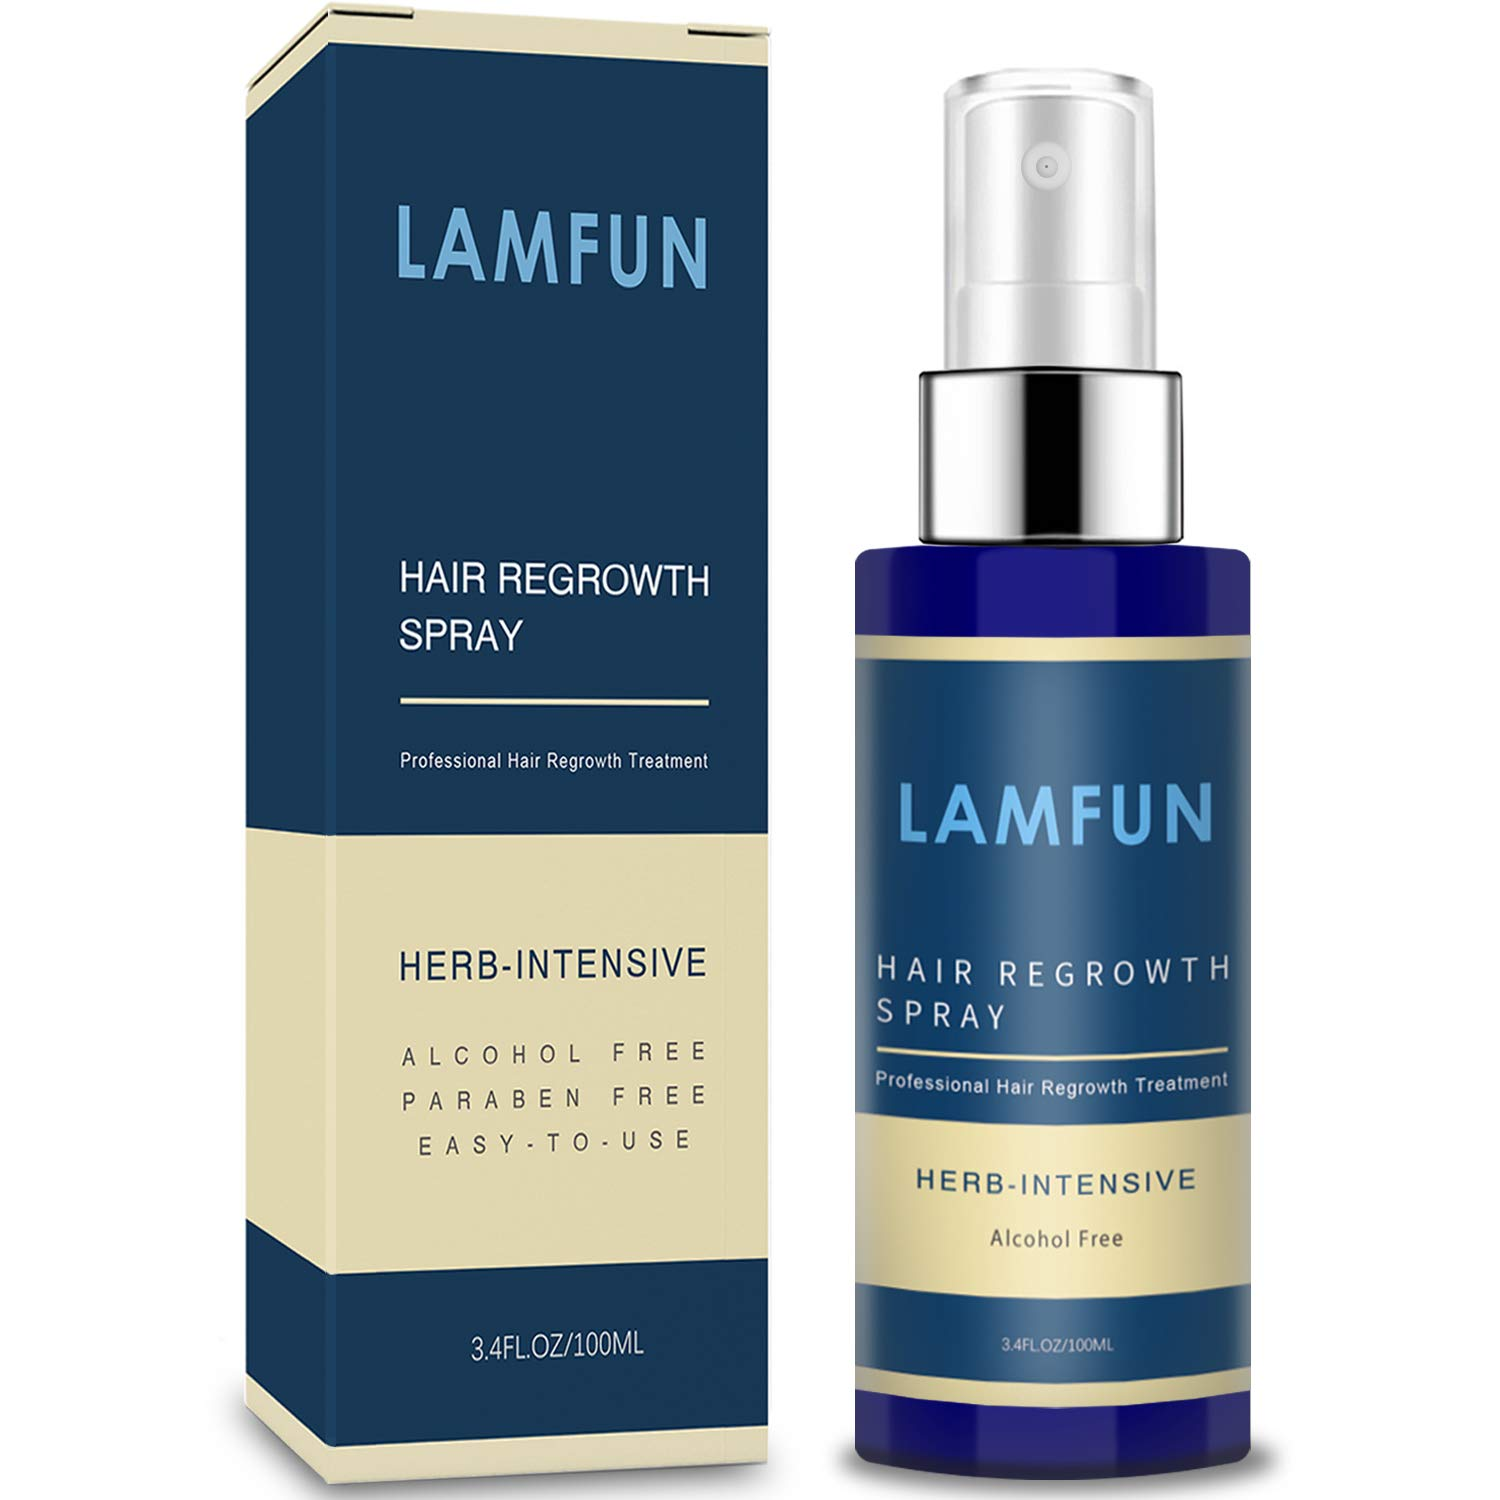 Amazon Com Hair Growth Spray Lamfun Professional Hair Loss Treatment 5 Minoxidil Solution For Hair Loss Thinning Regrowth And Balding Topical Treatment For Men And Women Alcohol Free And Non Oily 100ml